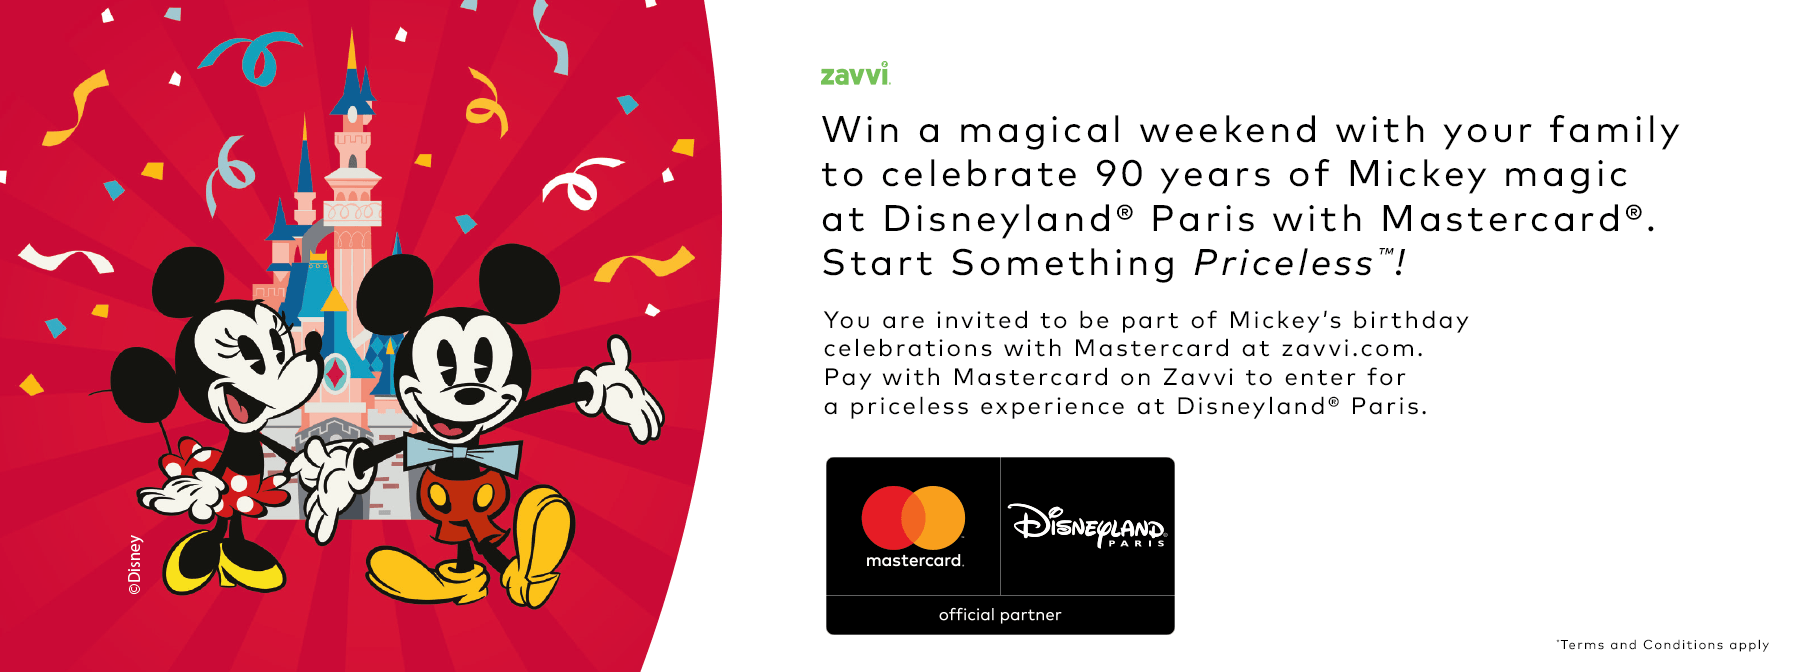 Win a trip to Disneyland courtesy of Mastercard and Zavvi